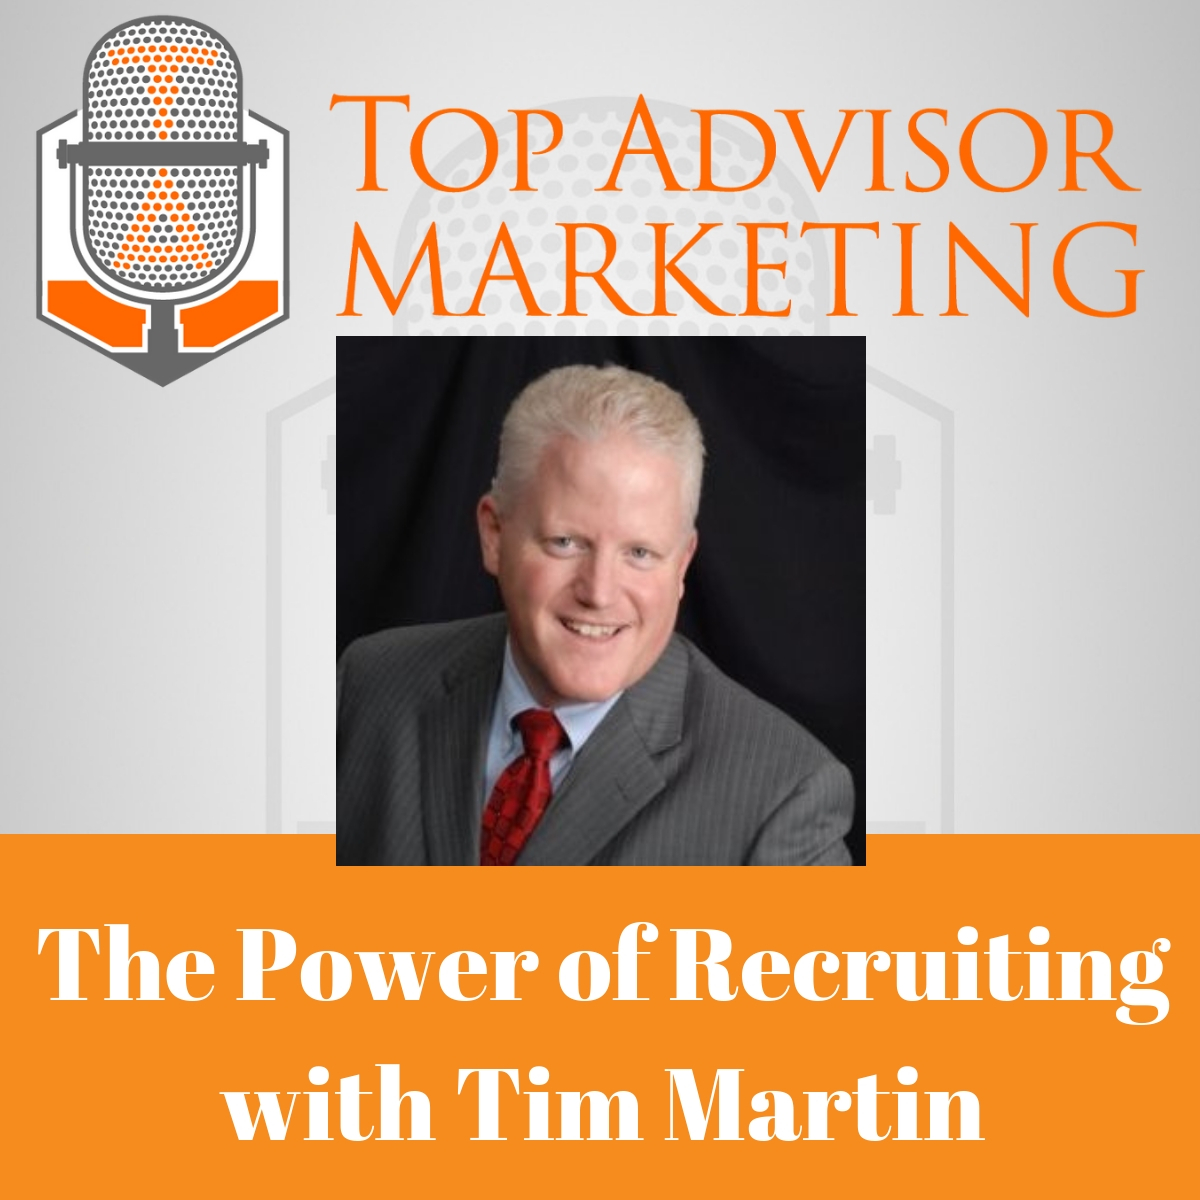 Episode 163 - The Power of Recruiting with Tim Martin